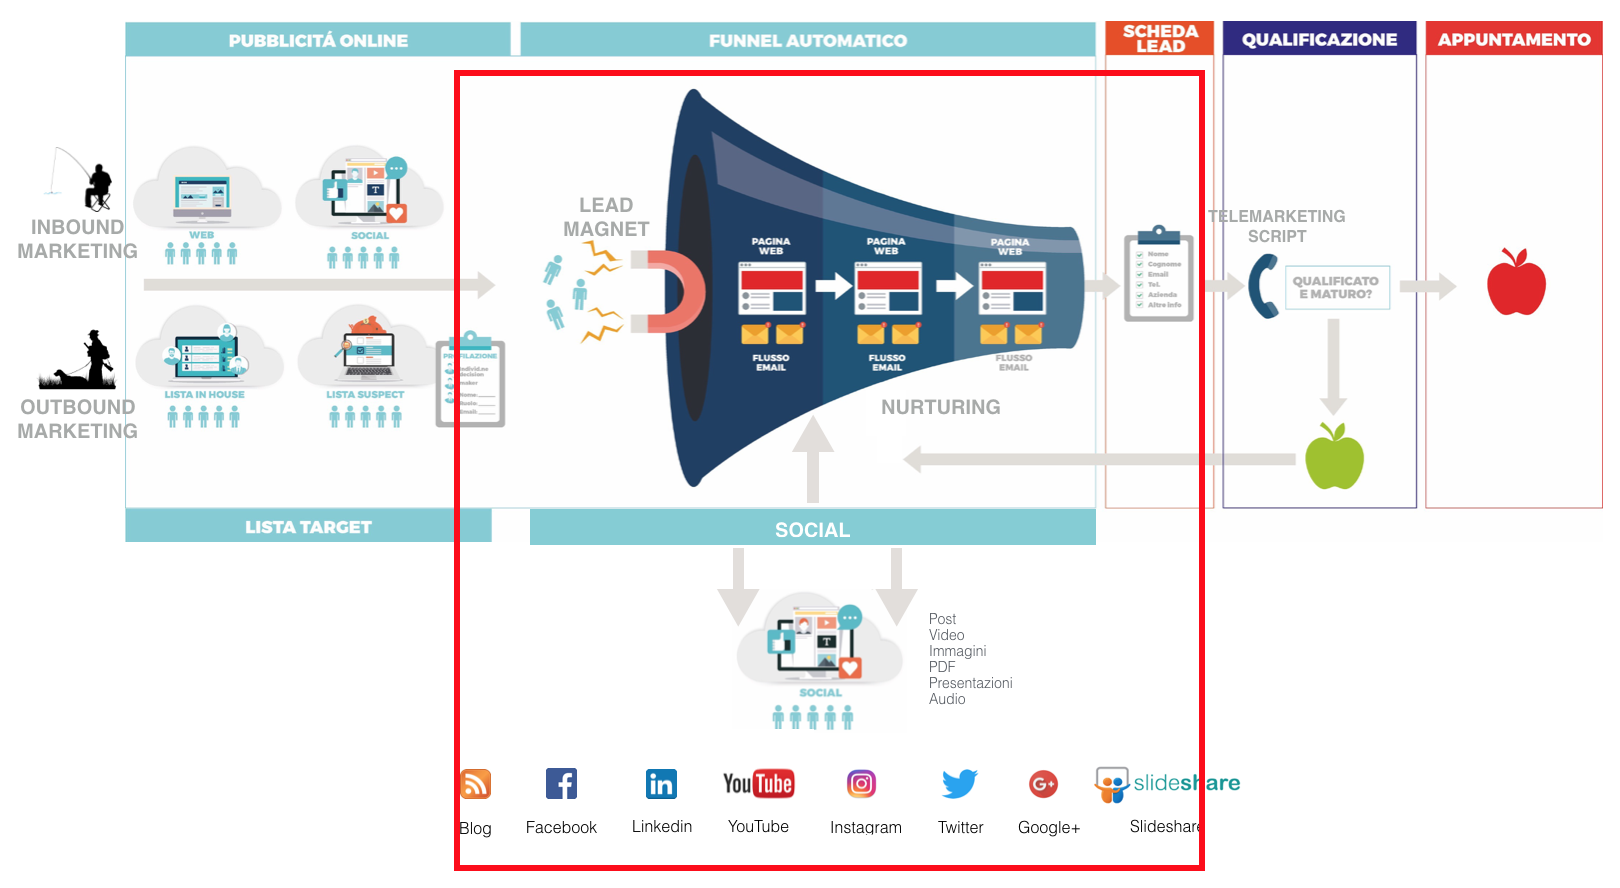 Social Media Marketing funnel - Lead Generation Farm